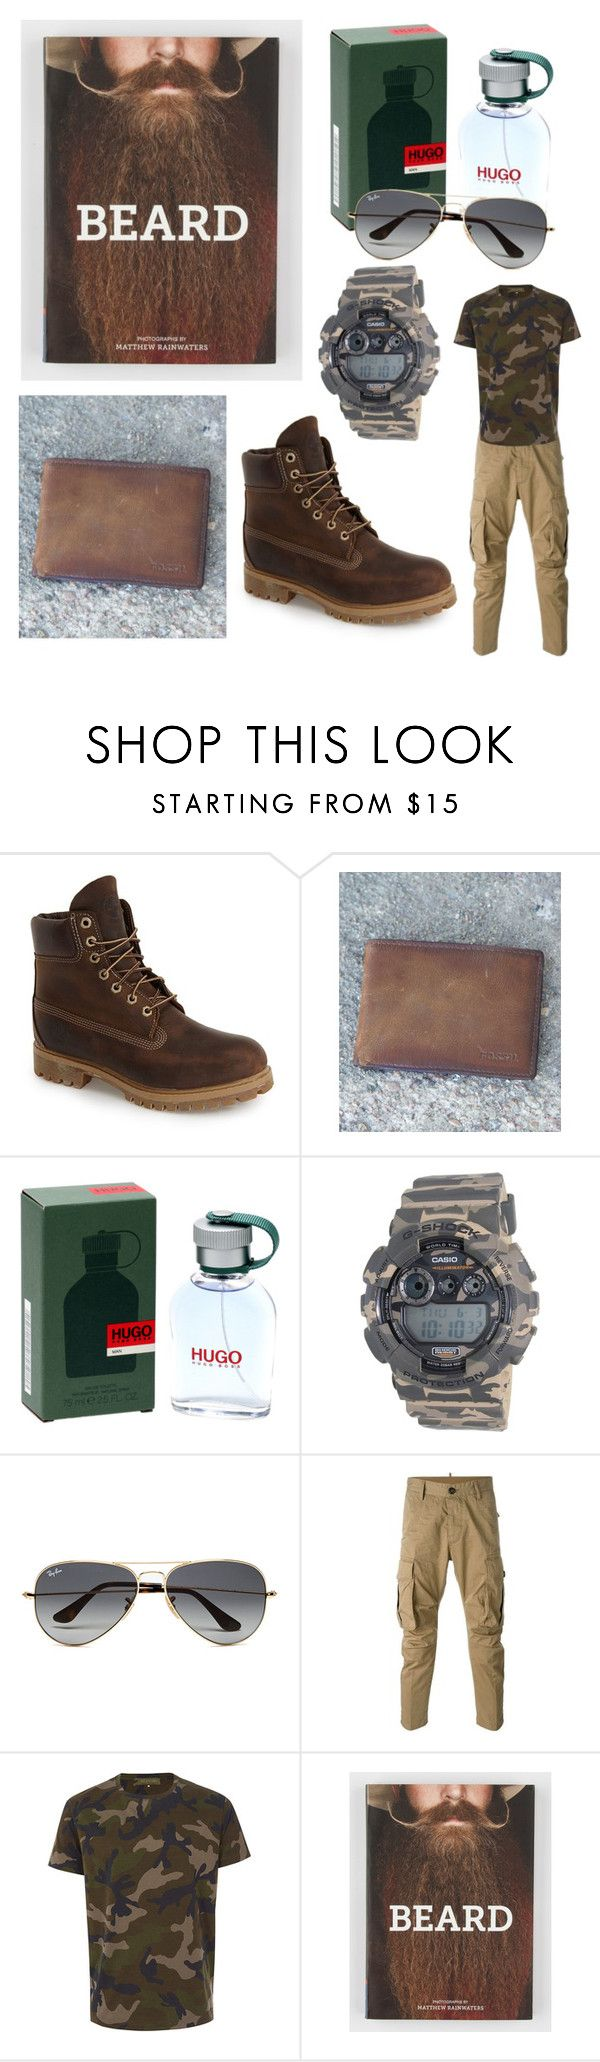 """Man."" by klaunela on Polyvore featuring Timberland, FOSSIL, HUGO, Casio, Ray-Ban, Dsquared2, Valentino, men's fashion and menswear"